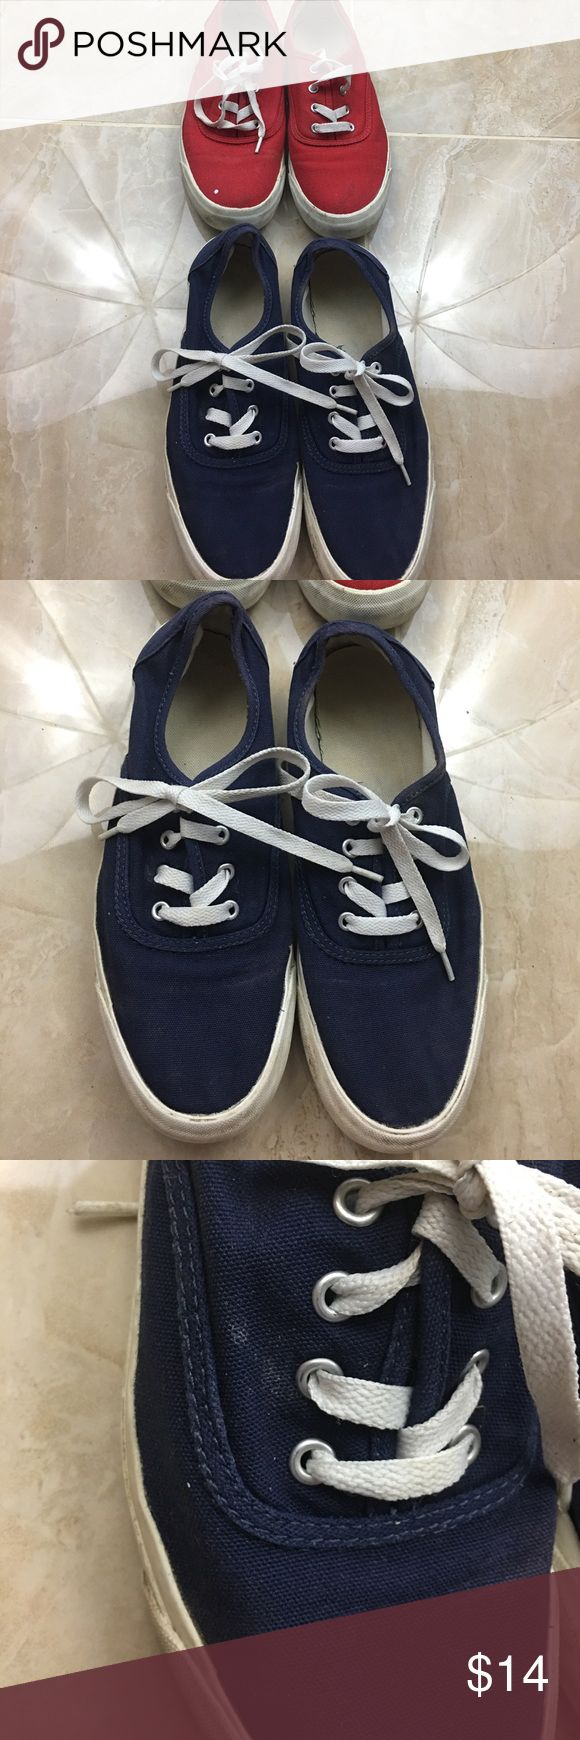 BUNDLE! 2/$14 Keds Navy and Red Sneakers A bundle for Keds sneakers! 2/$14! They are both pro-keds. I have worn both, so there are some light stains on the red and one stain on the blue pair. Of course the white edges are also dirty as well for both shoes. I'm sure if you wash them, the stains would go away. The red has a white dot that looks like paint, but I got them like that! Other than that they are in good condition! Looks good with any outfit. Keds Shoes Sneakers